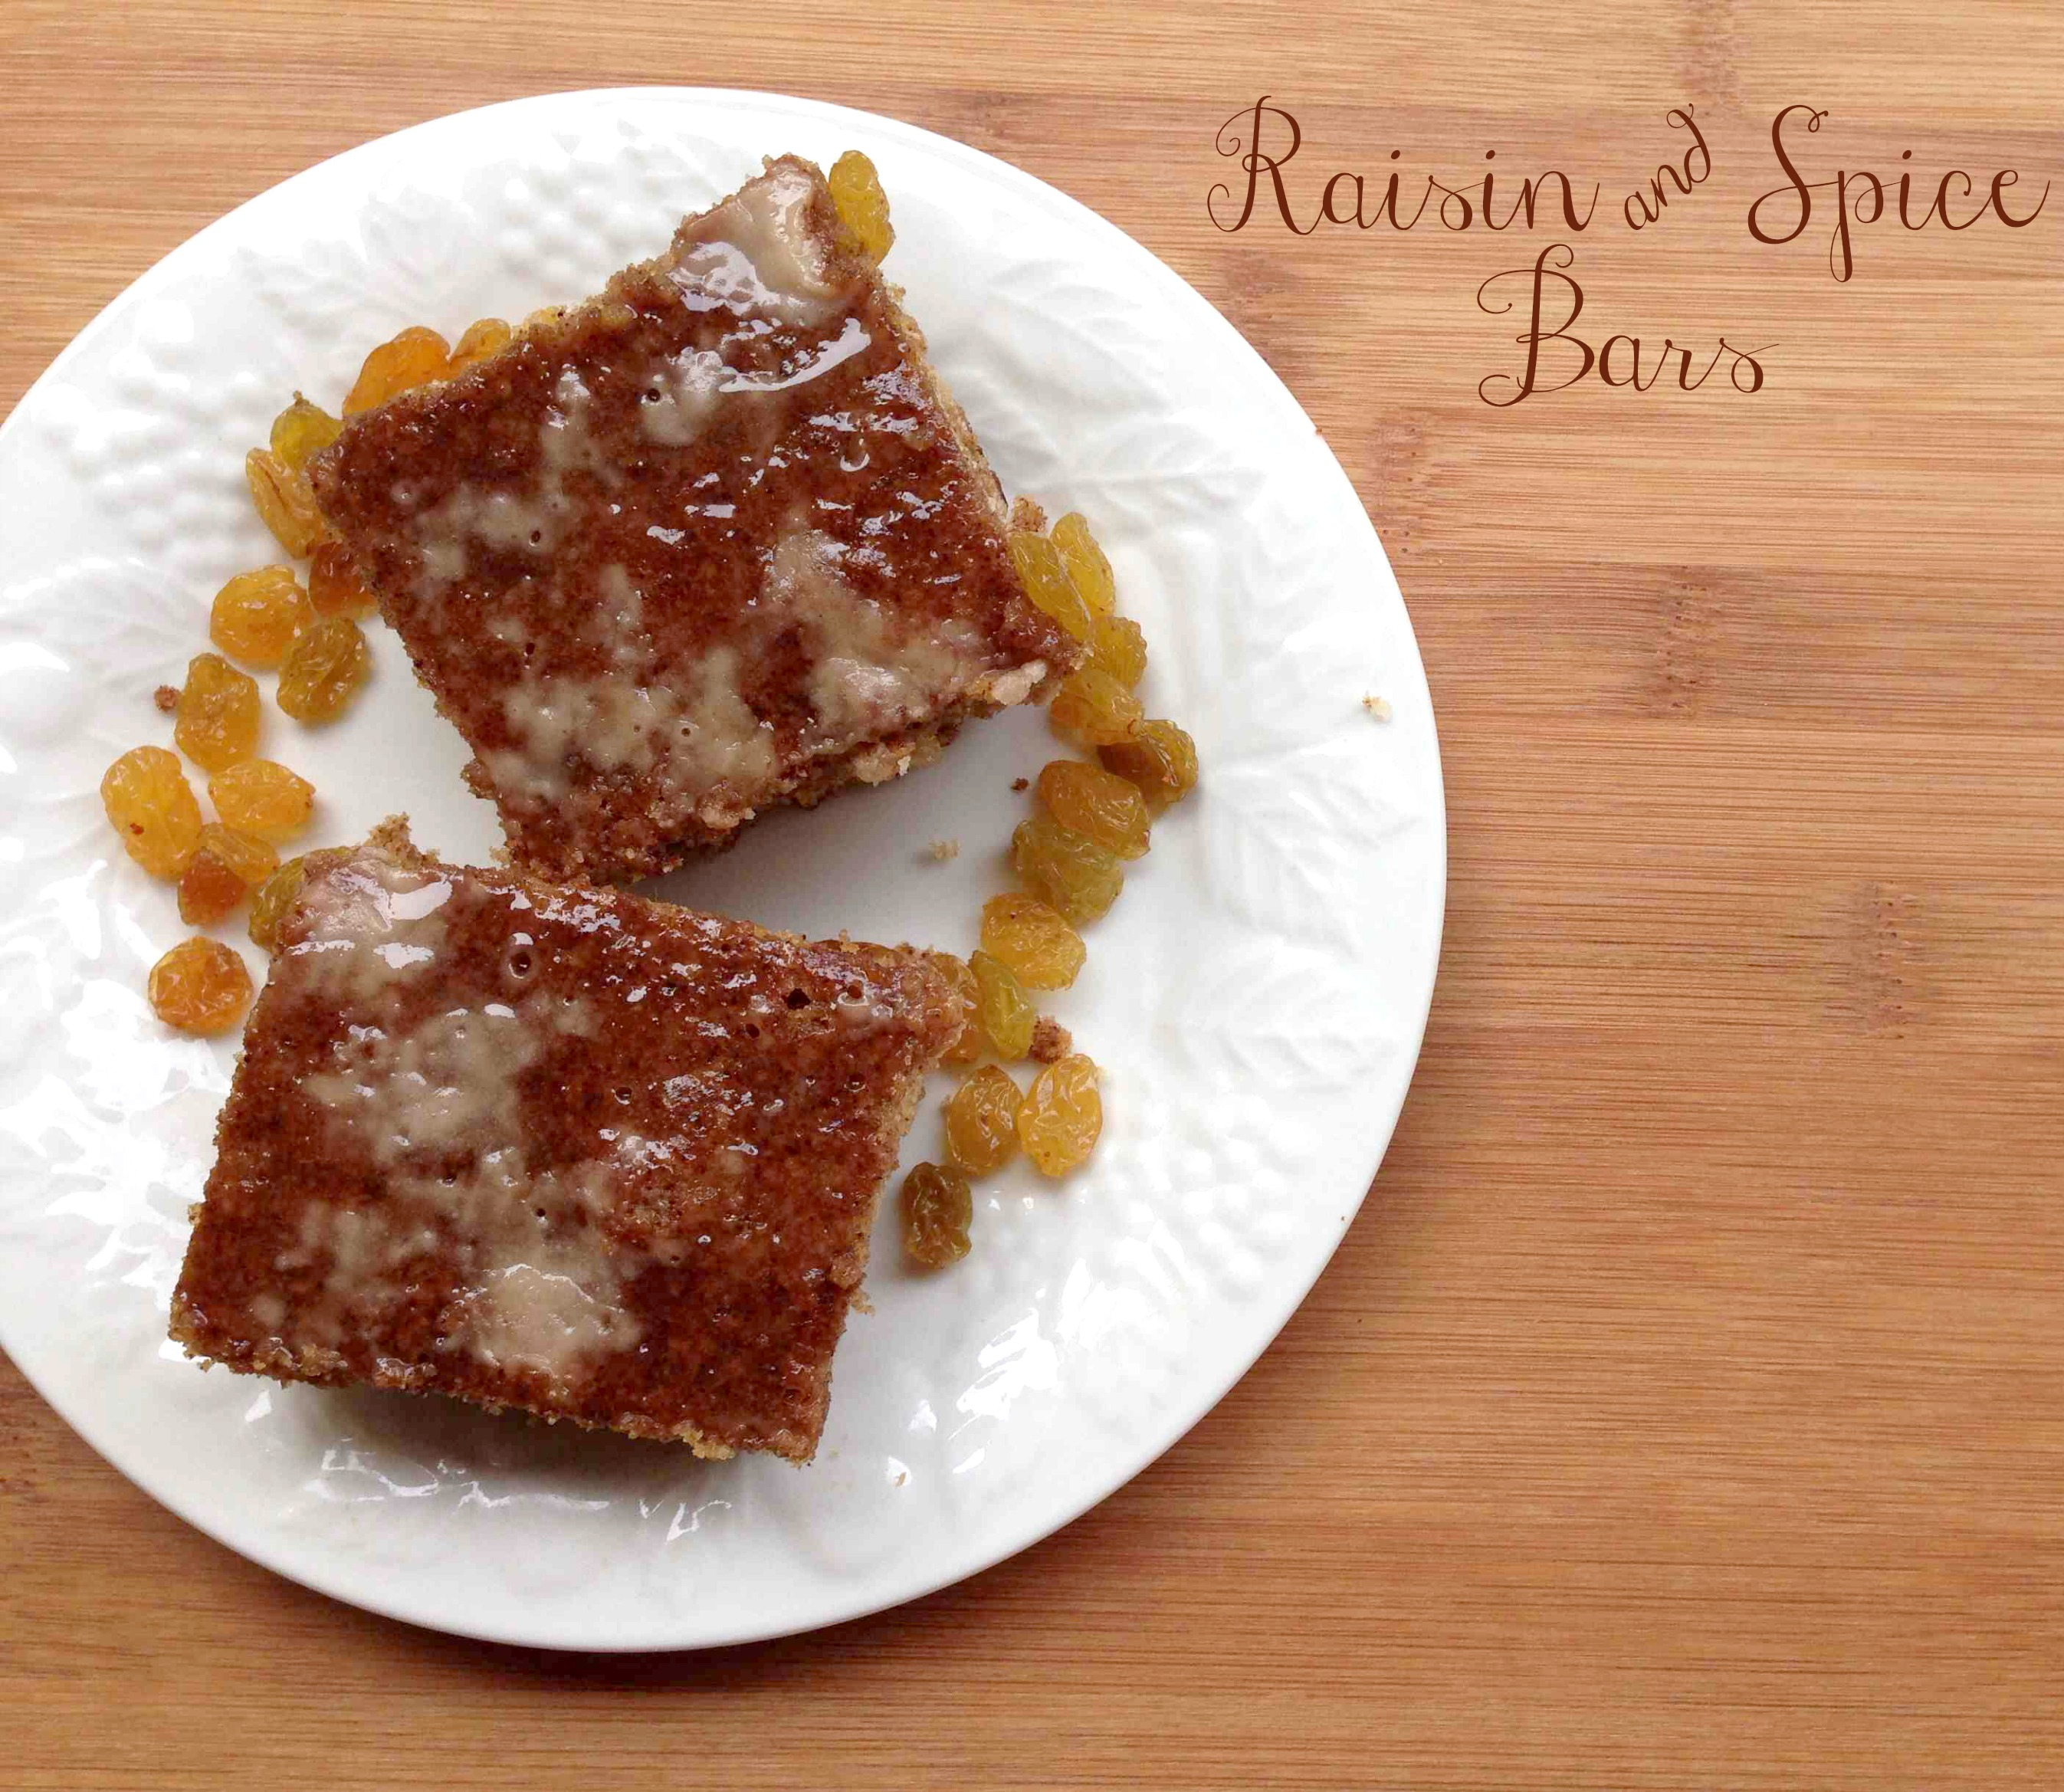 Glazed Raisin & Spice Bars